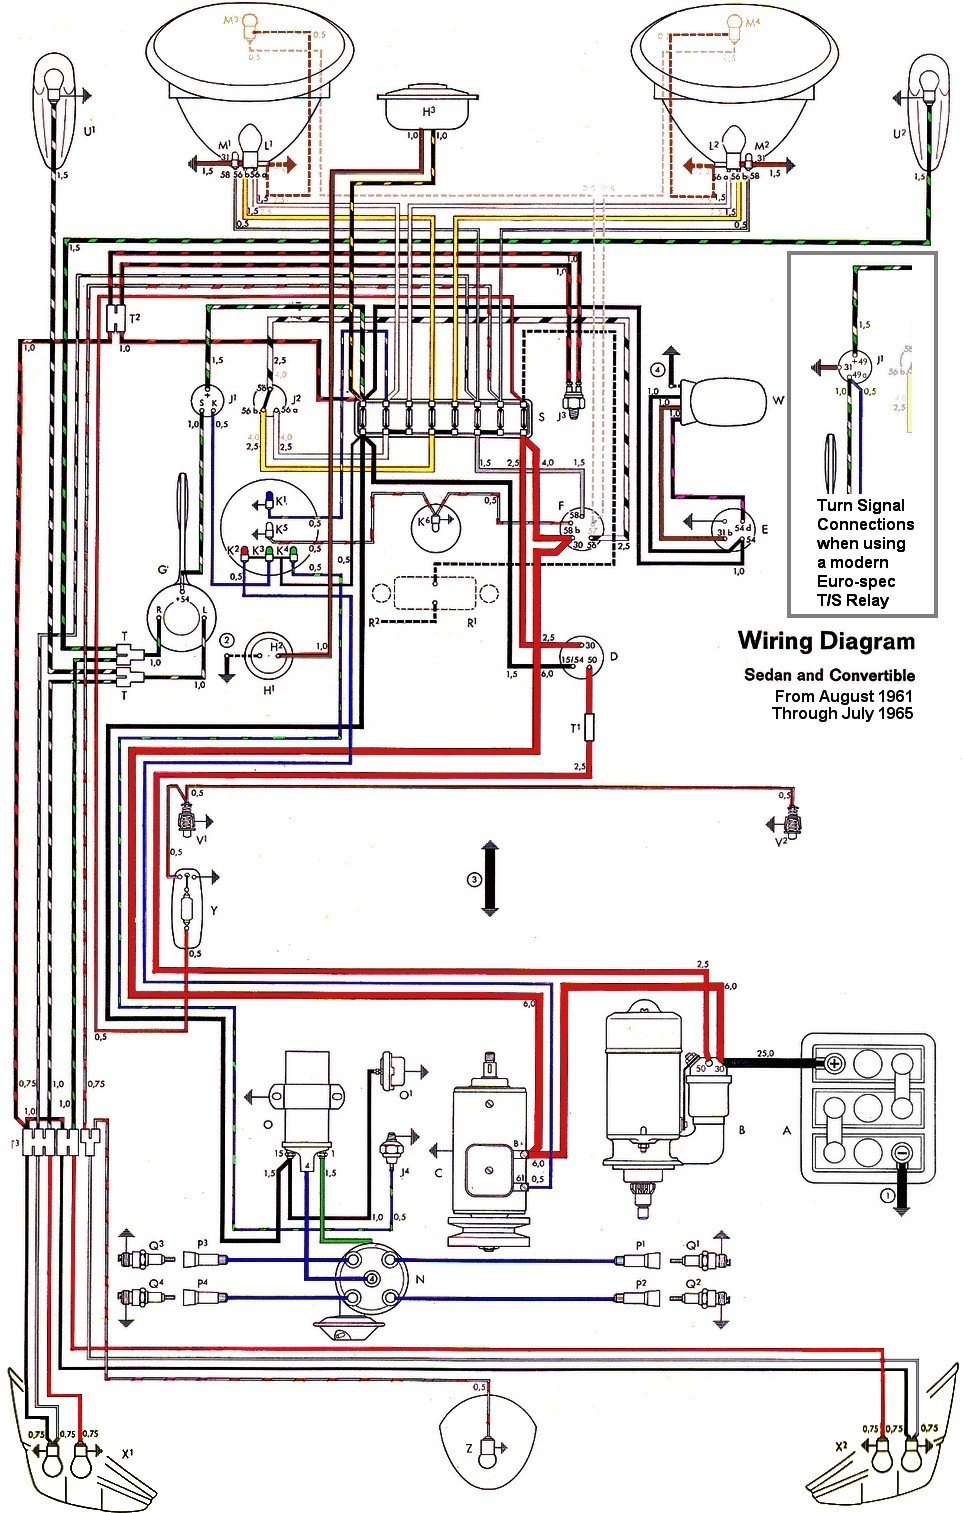 thesamba com type 1 wiring diagrams rh thesamba com 1965 VW Beetle Wiring Diagram 1965 VW Beetle Wiring Diagram